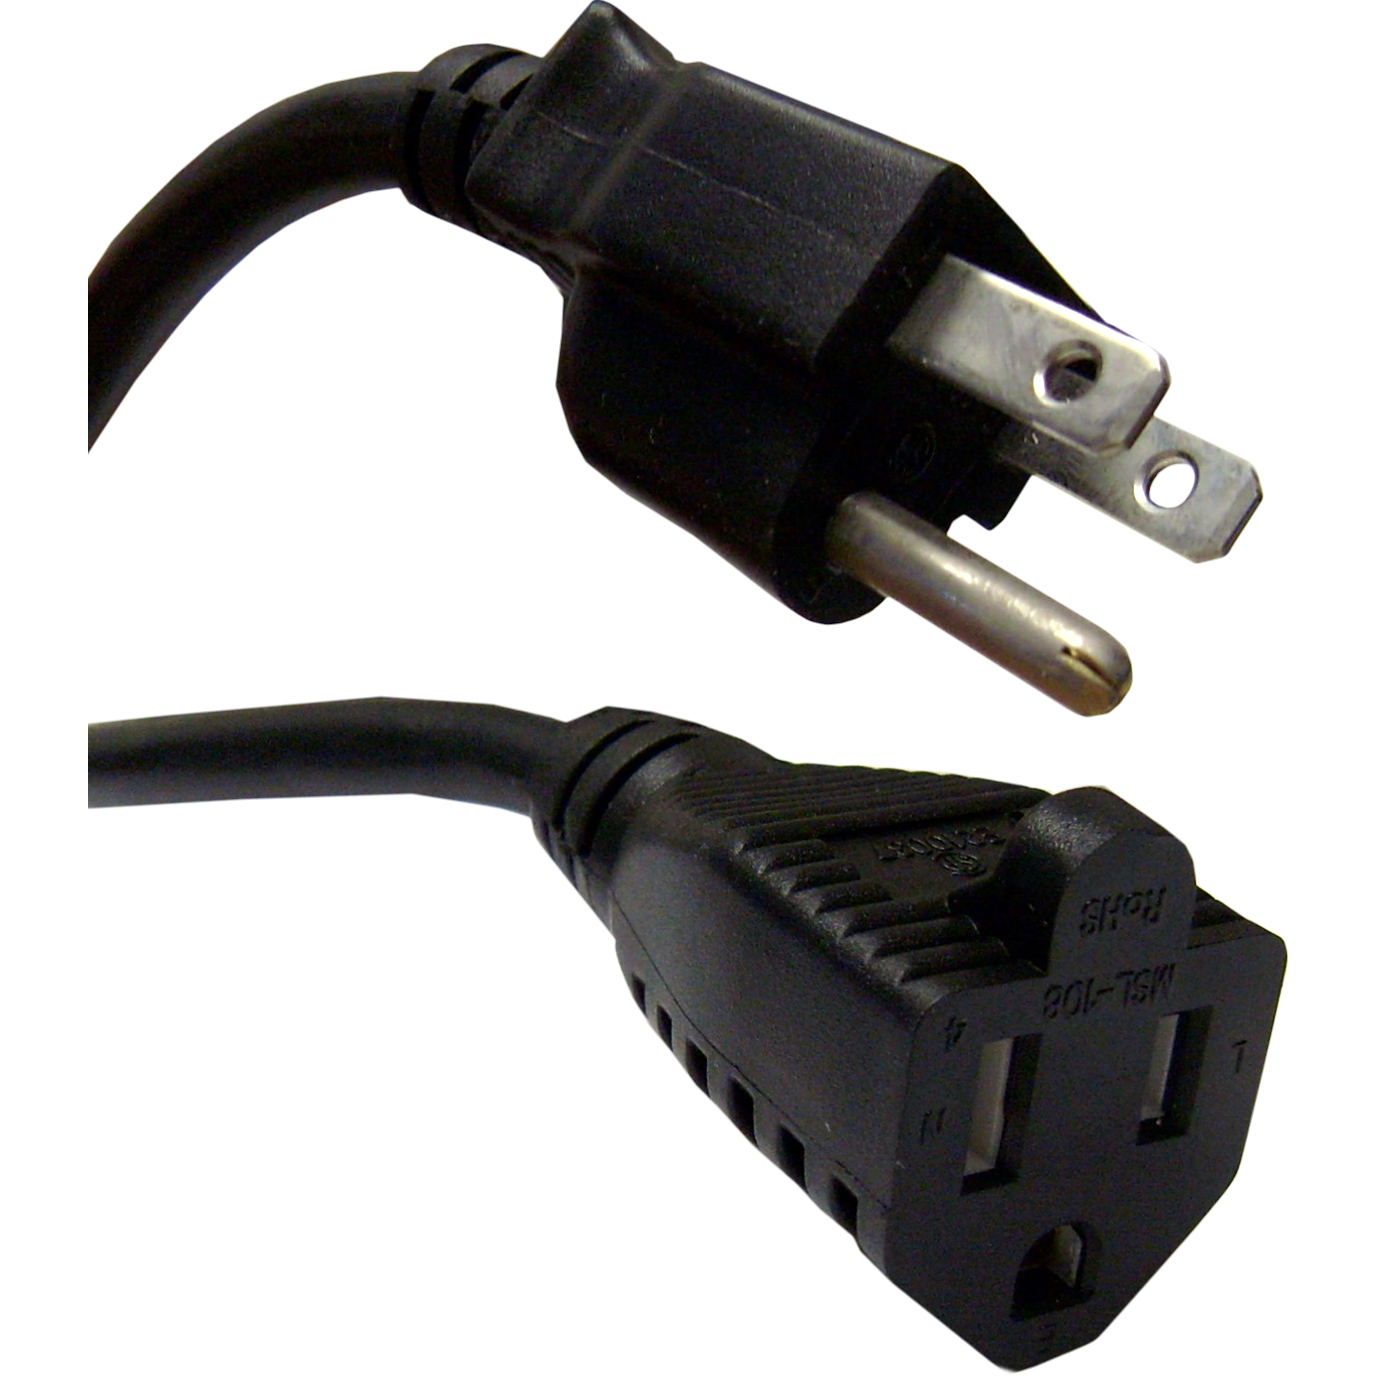 6ft Power Extension Cord Black 16awg 125v 13a